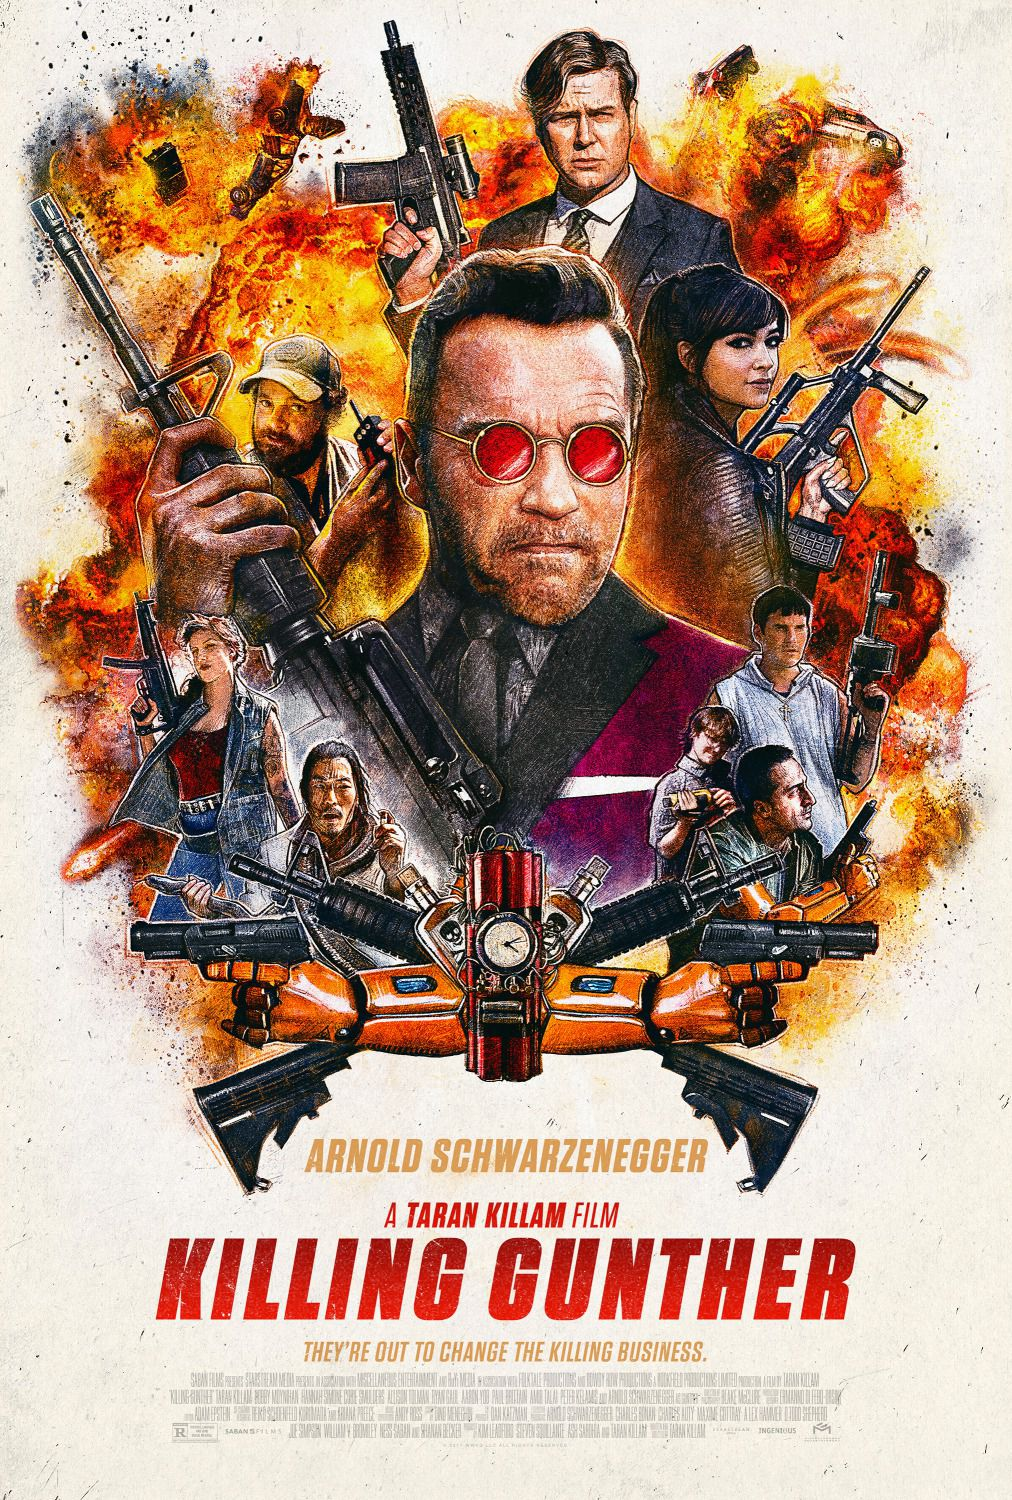 Killing Gunther - Arnold Schwarzenegger - a Taran Killam film - Kill the best poster